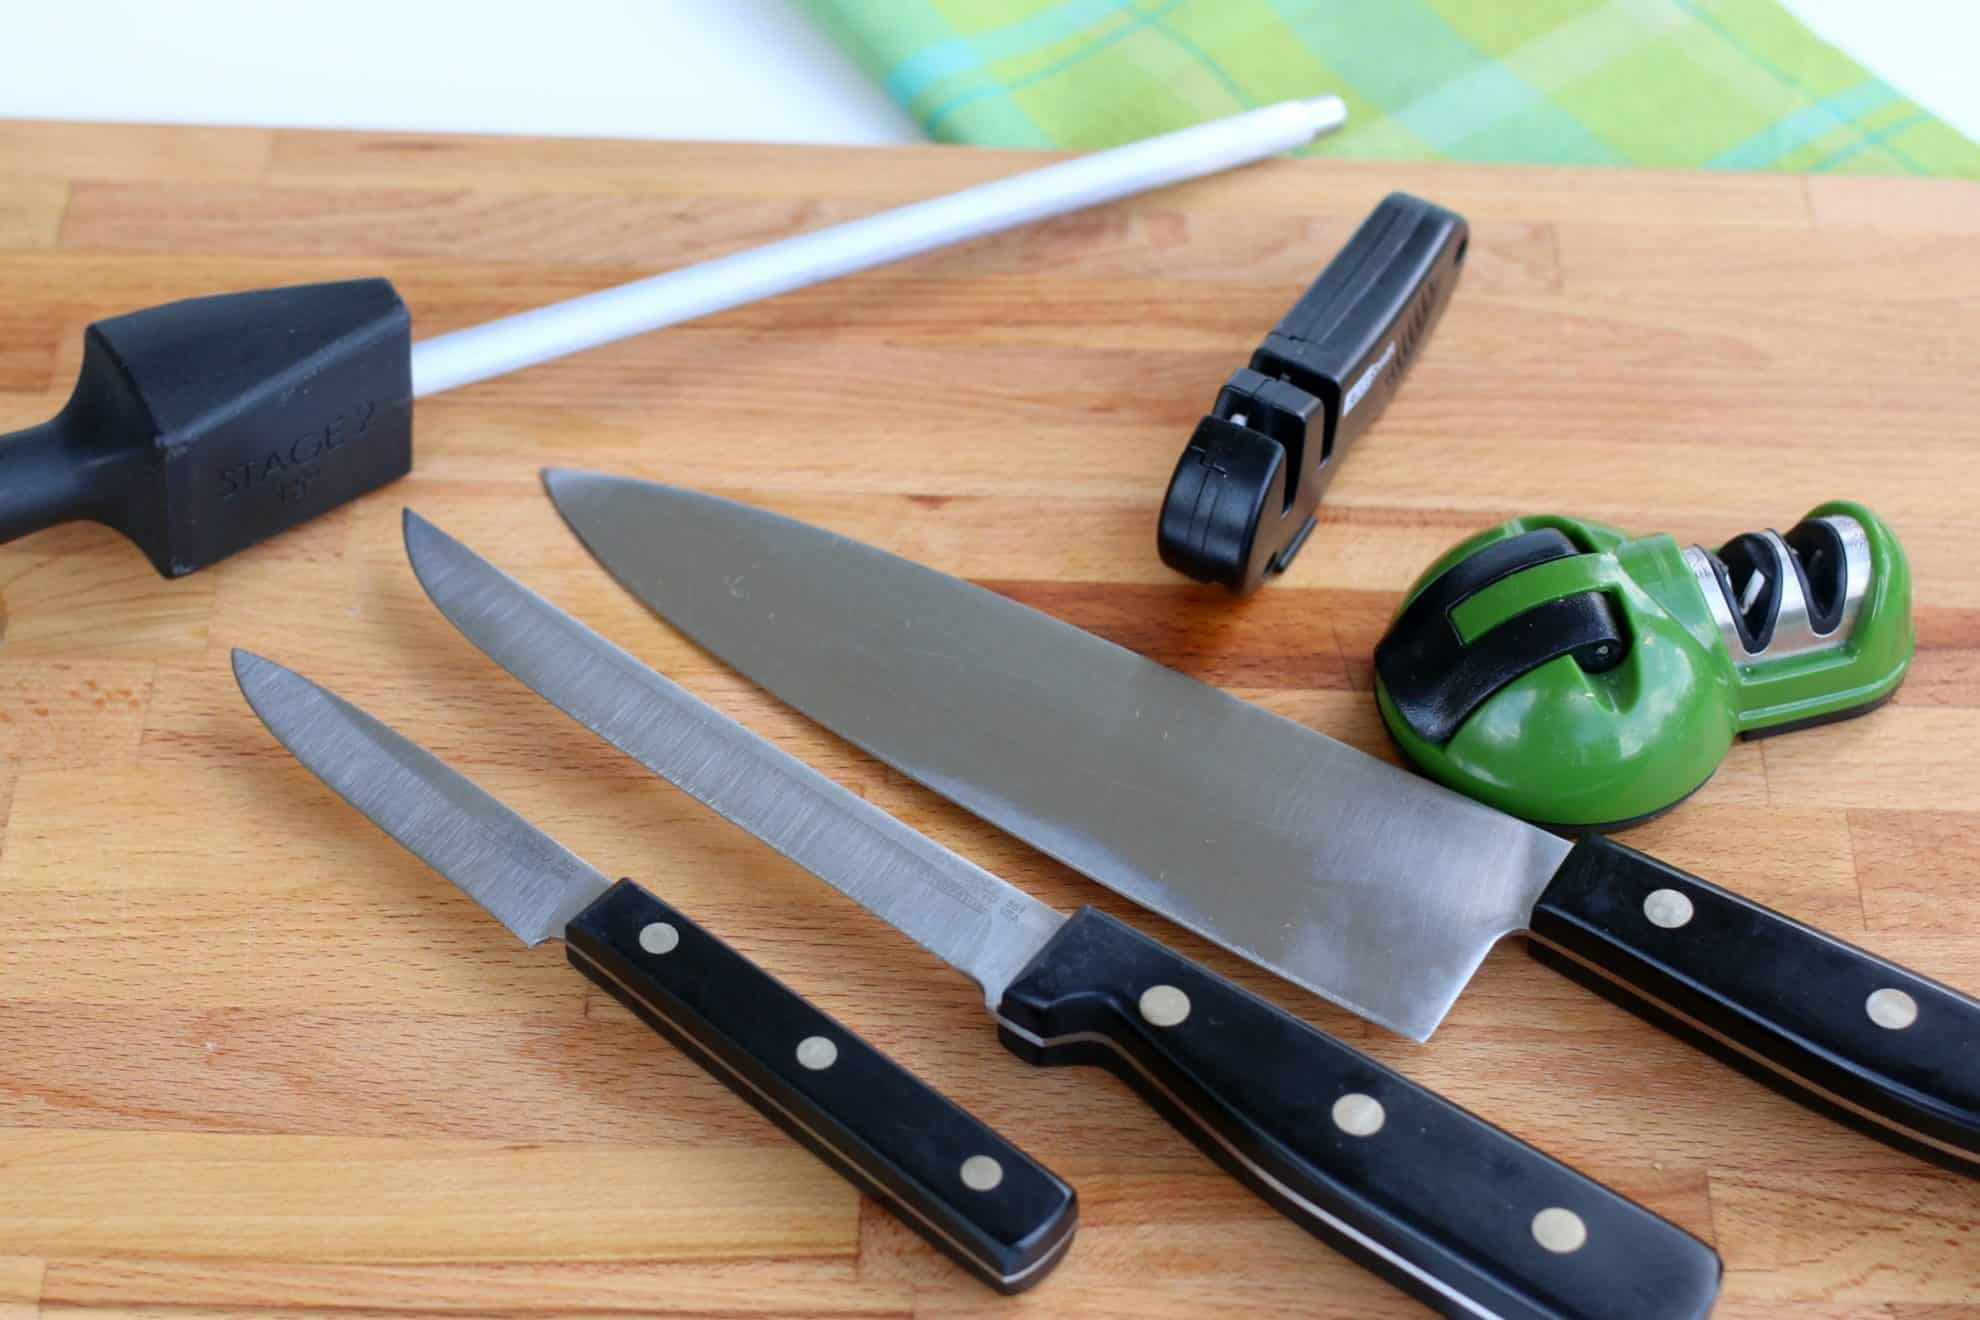 There are many tools for sharpening kitchen knifes. Some are shown here on a cutting board alongside knives.